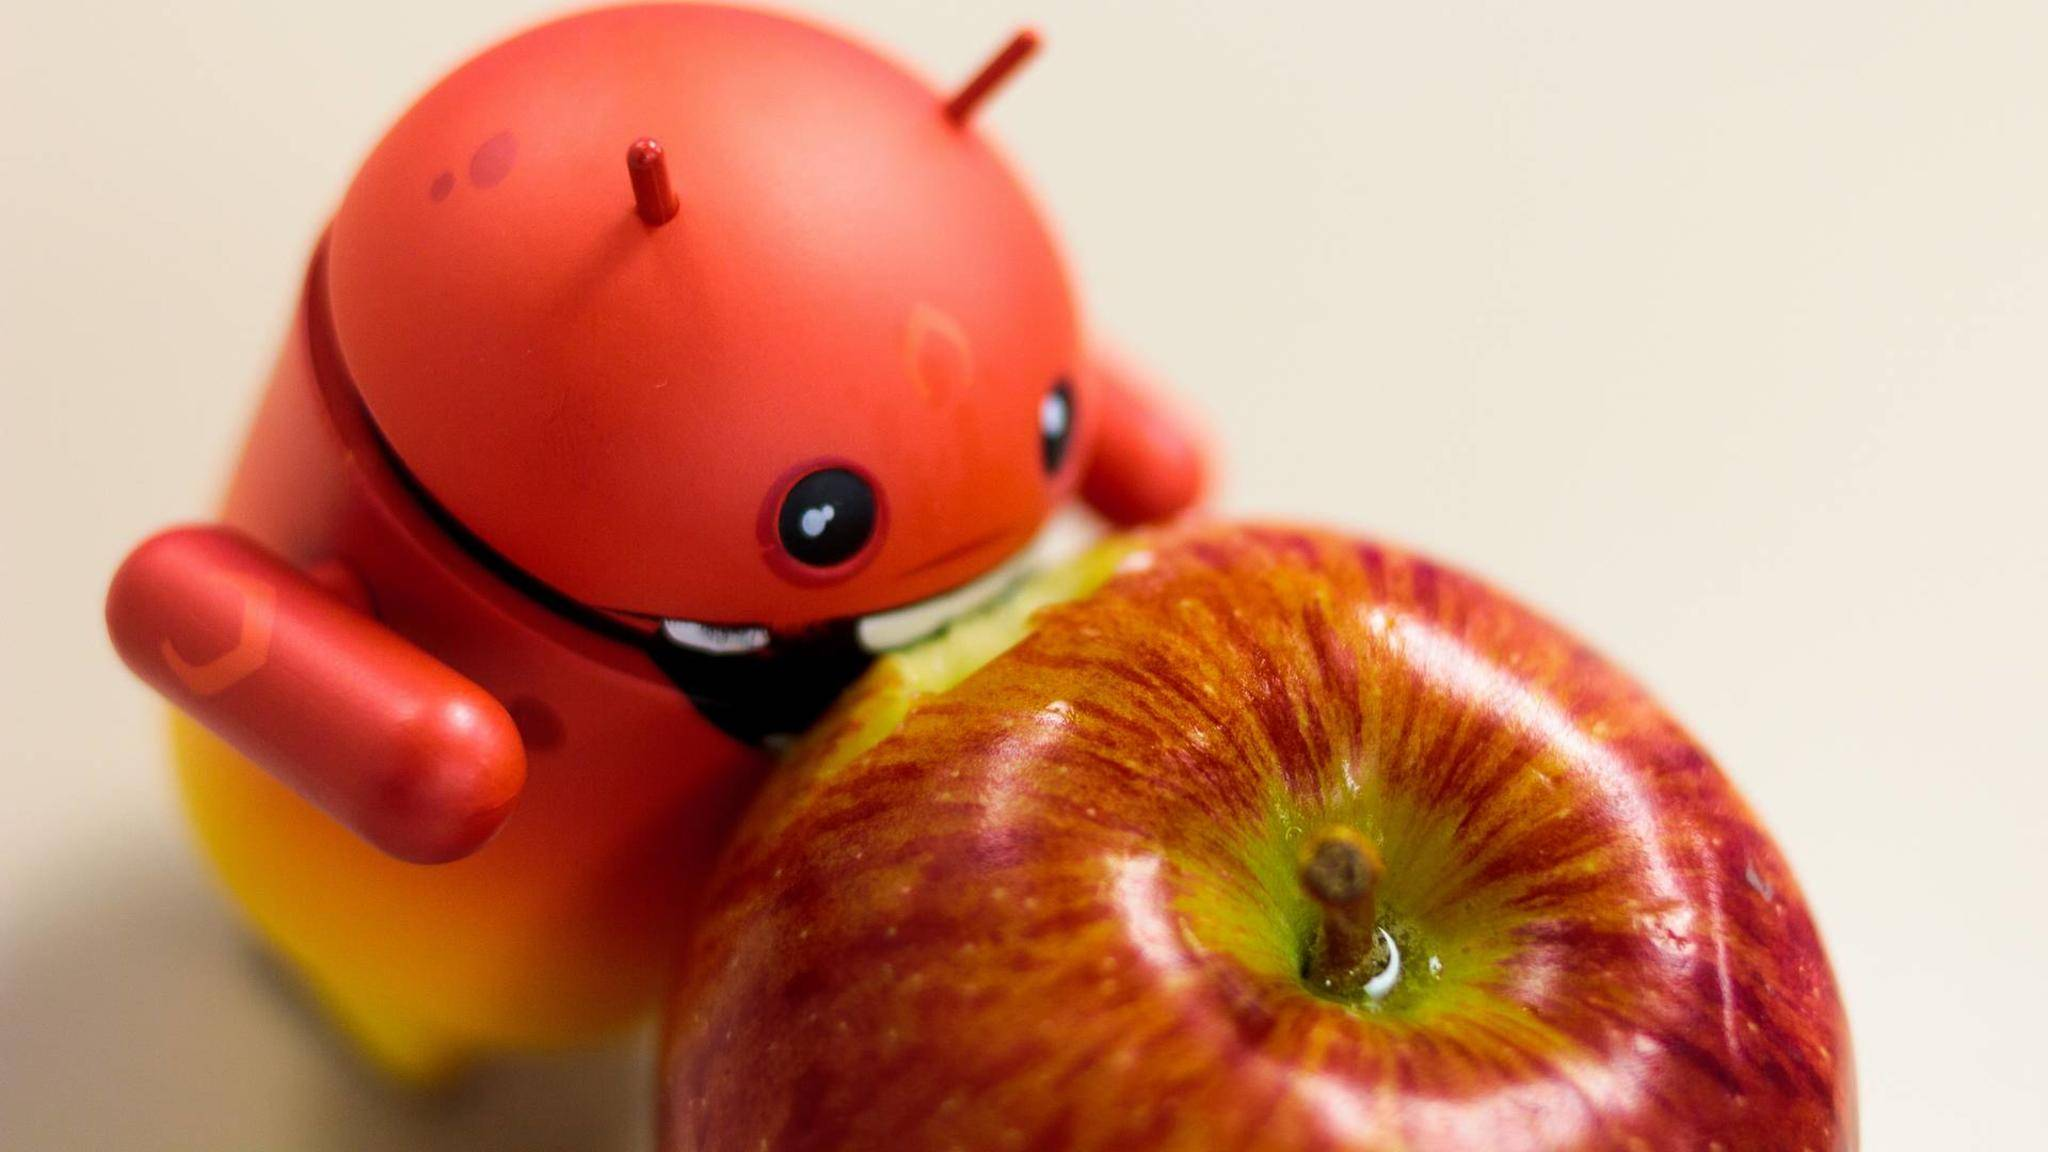 Mit manchen Features verspeist Android den Konkurrenten Apple.